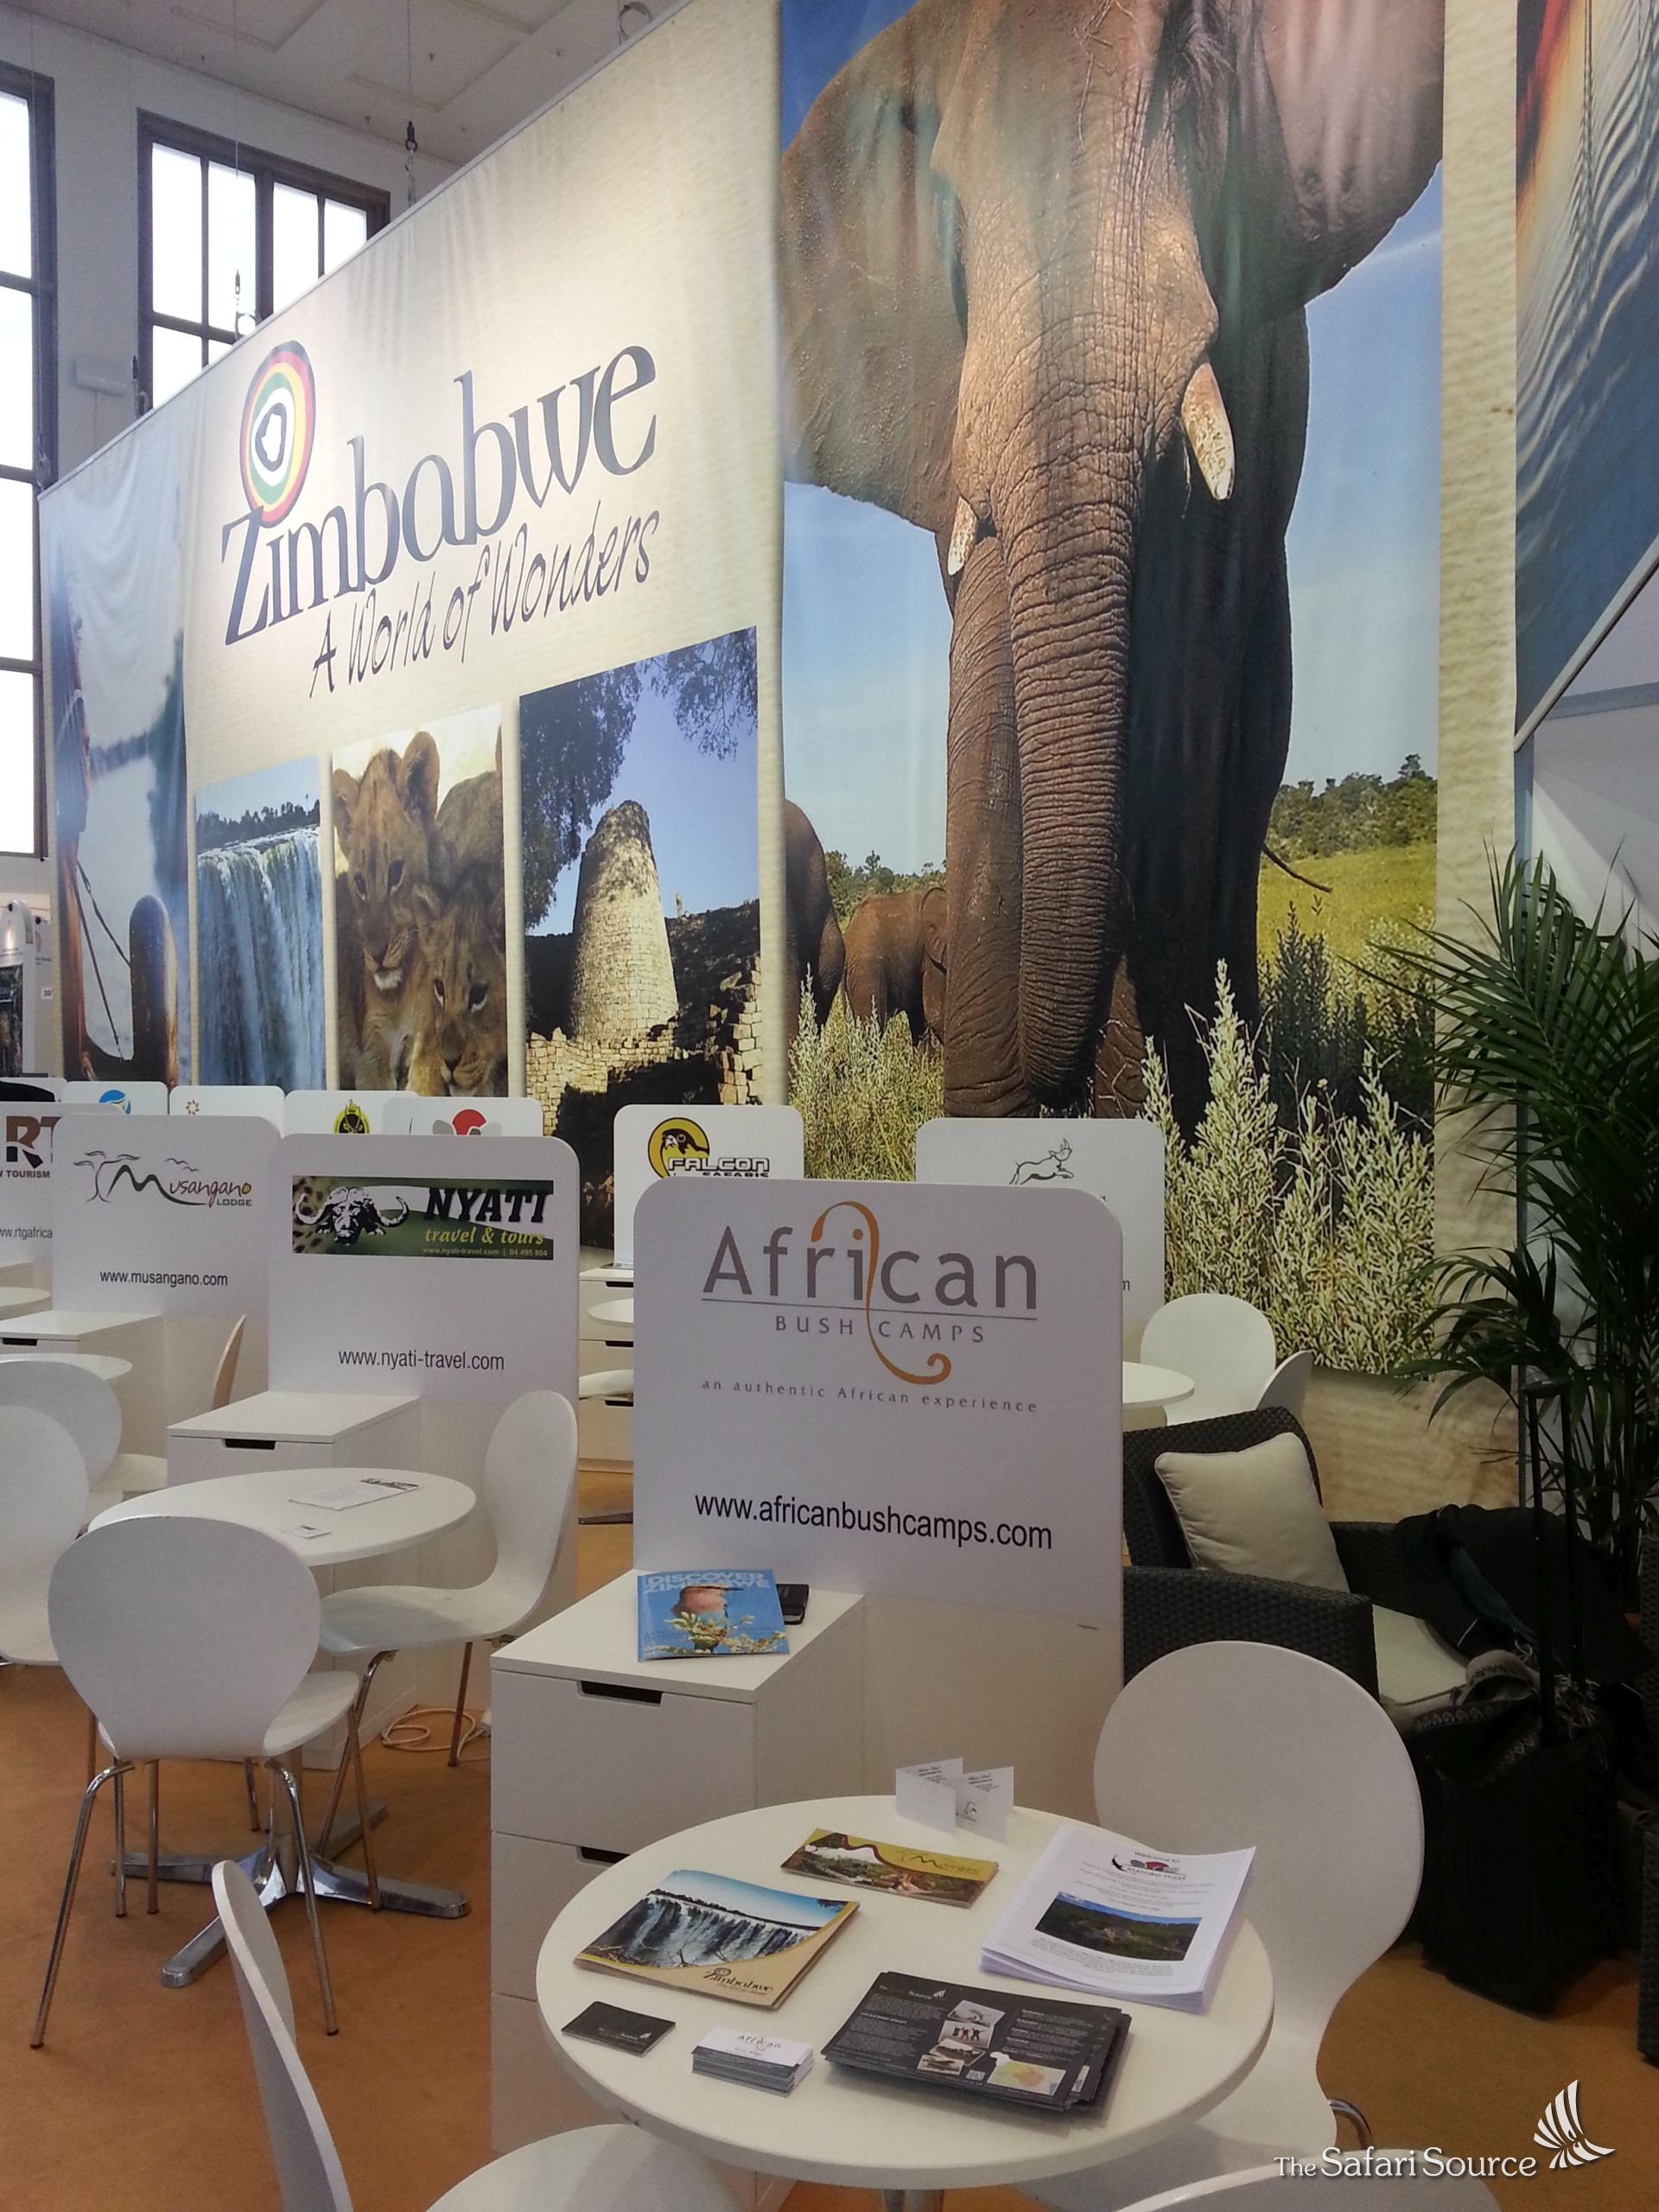 The Safari Source exhibited at the ITB Berlin 2016 at the African Bush Camps Stand, Germany, Europe.